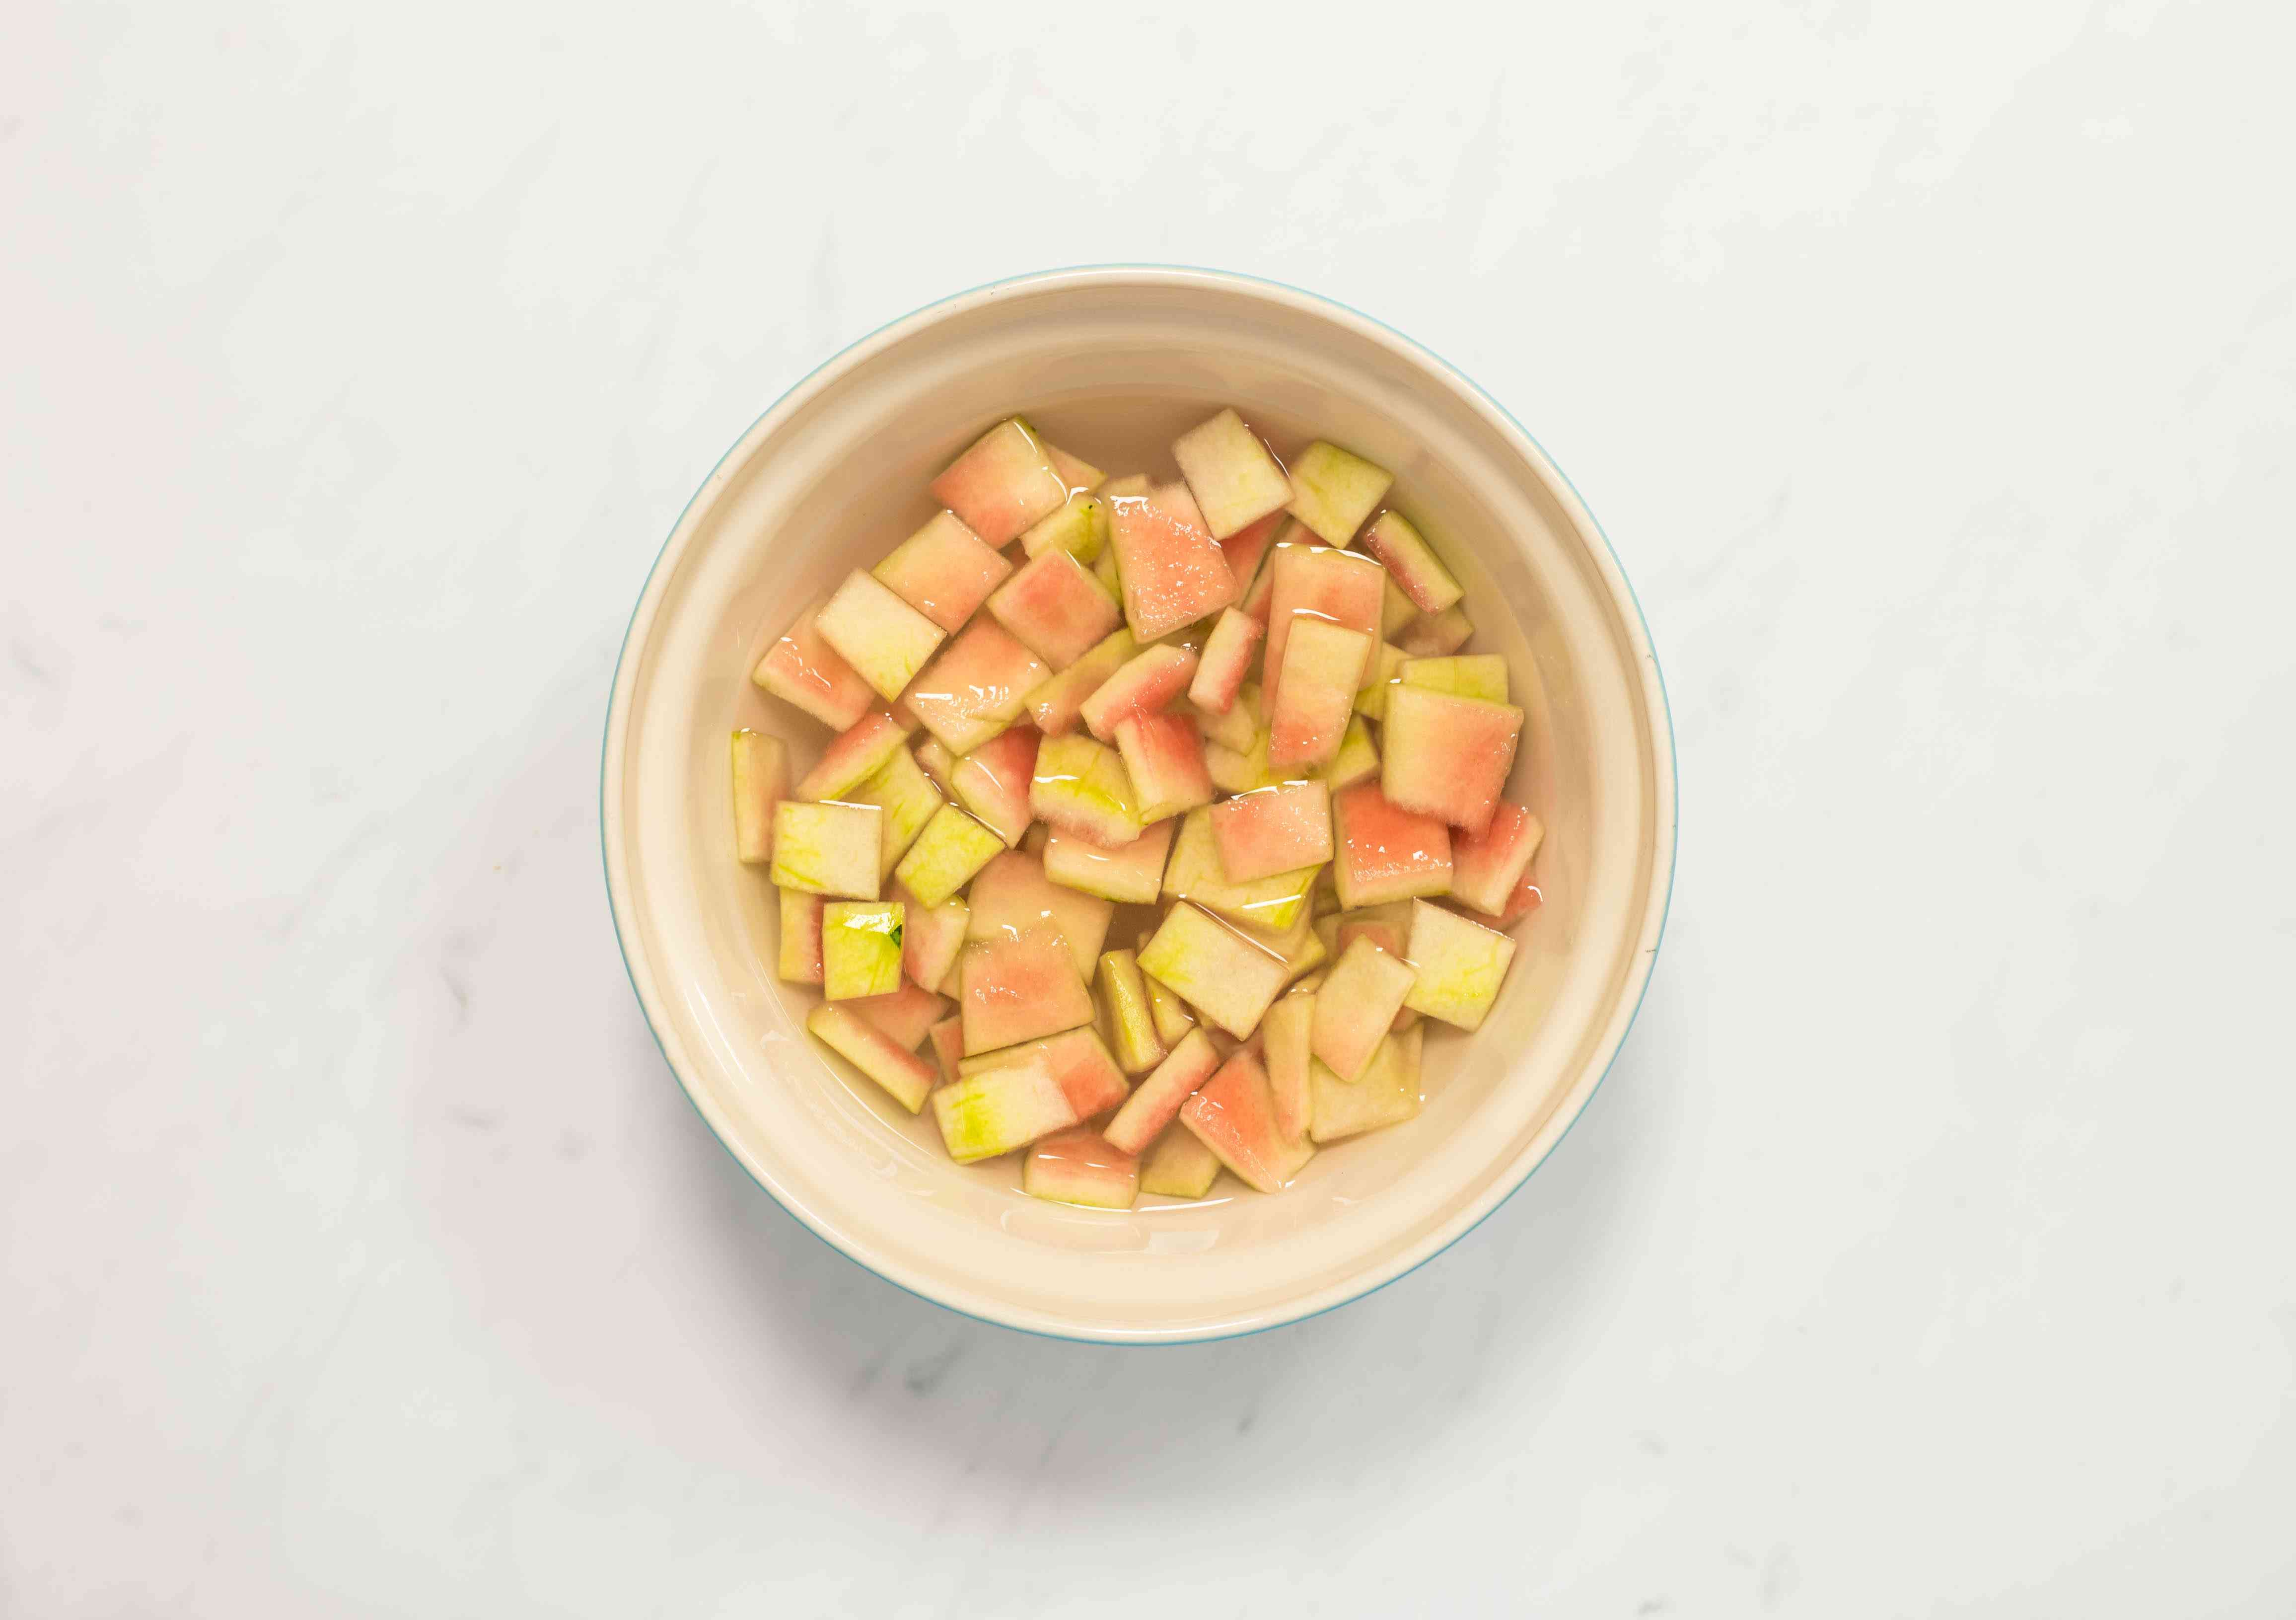 Watermelon rind in salt and water in a container